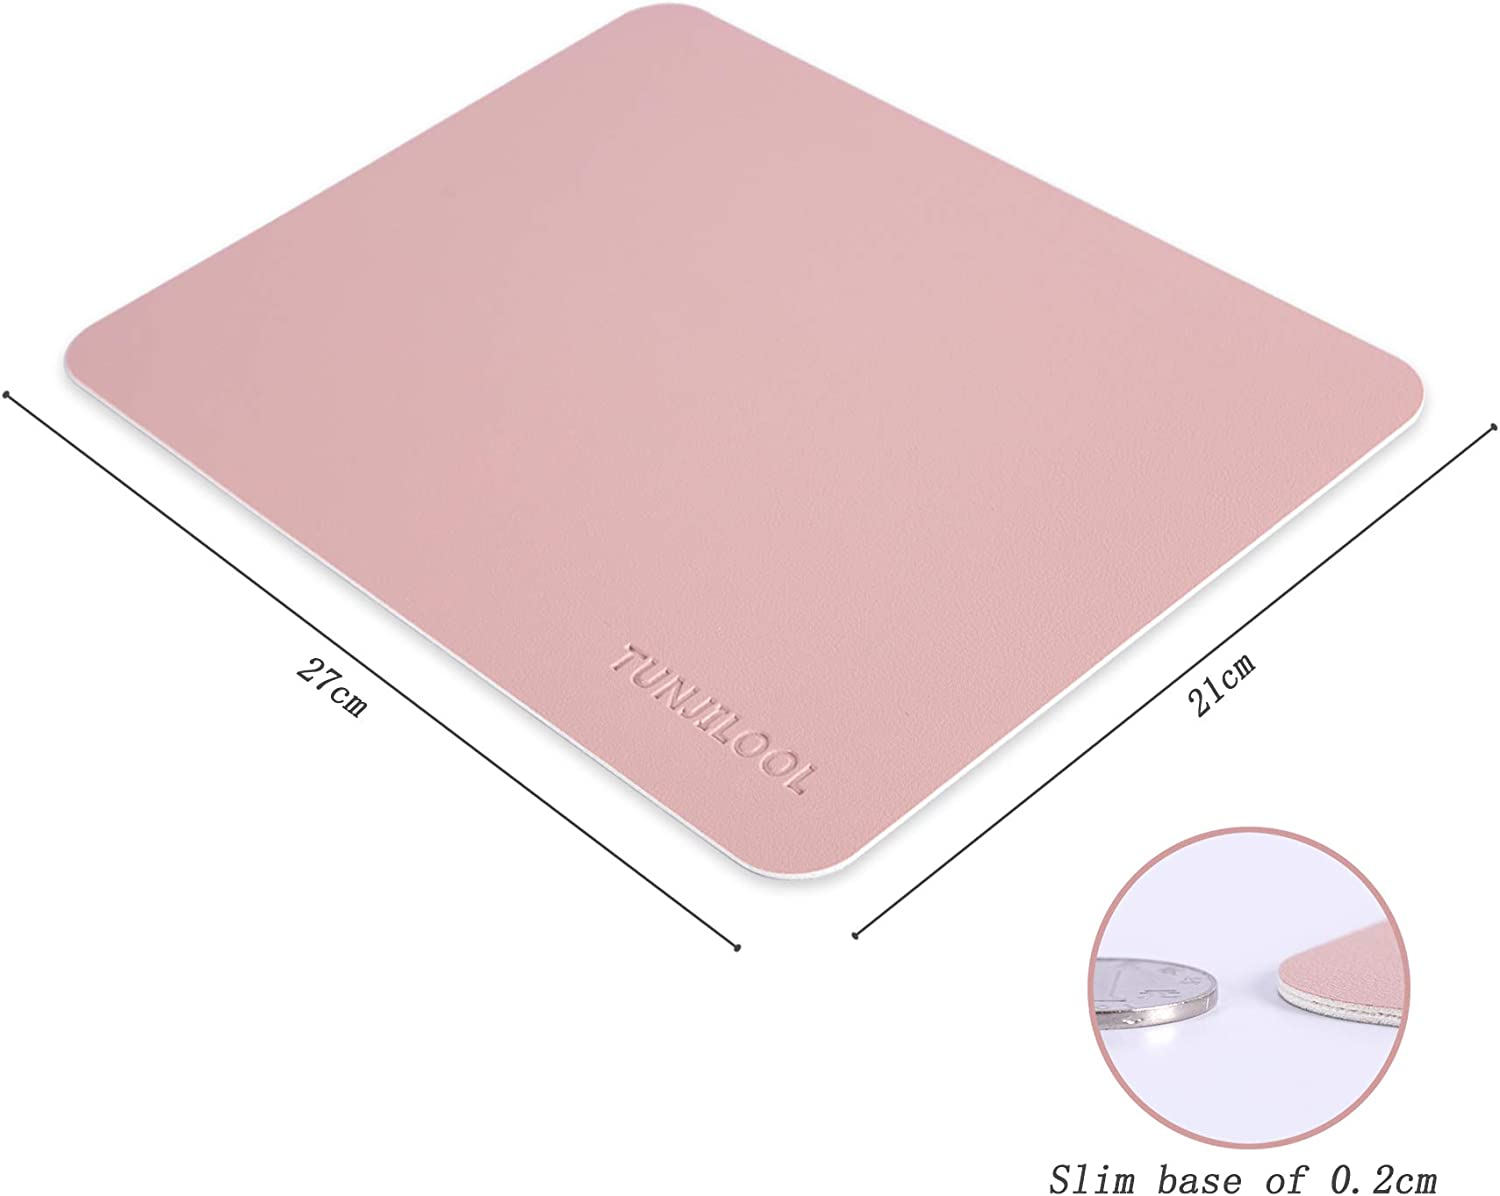 Gray//Sliver TUNJILOOL 2 in 1 Double Sided Rectangle Mouse Pad 270x210x2mm PU Waterproof Leather Protective Writing Pad for Office Home